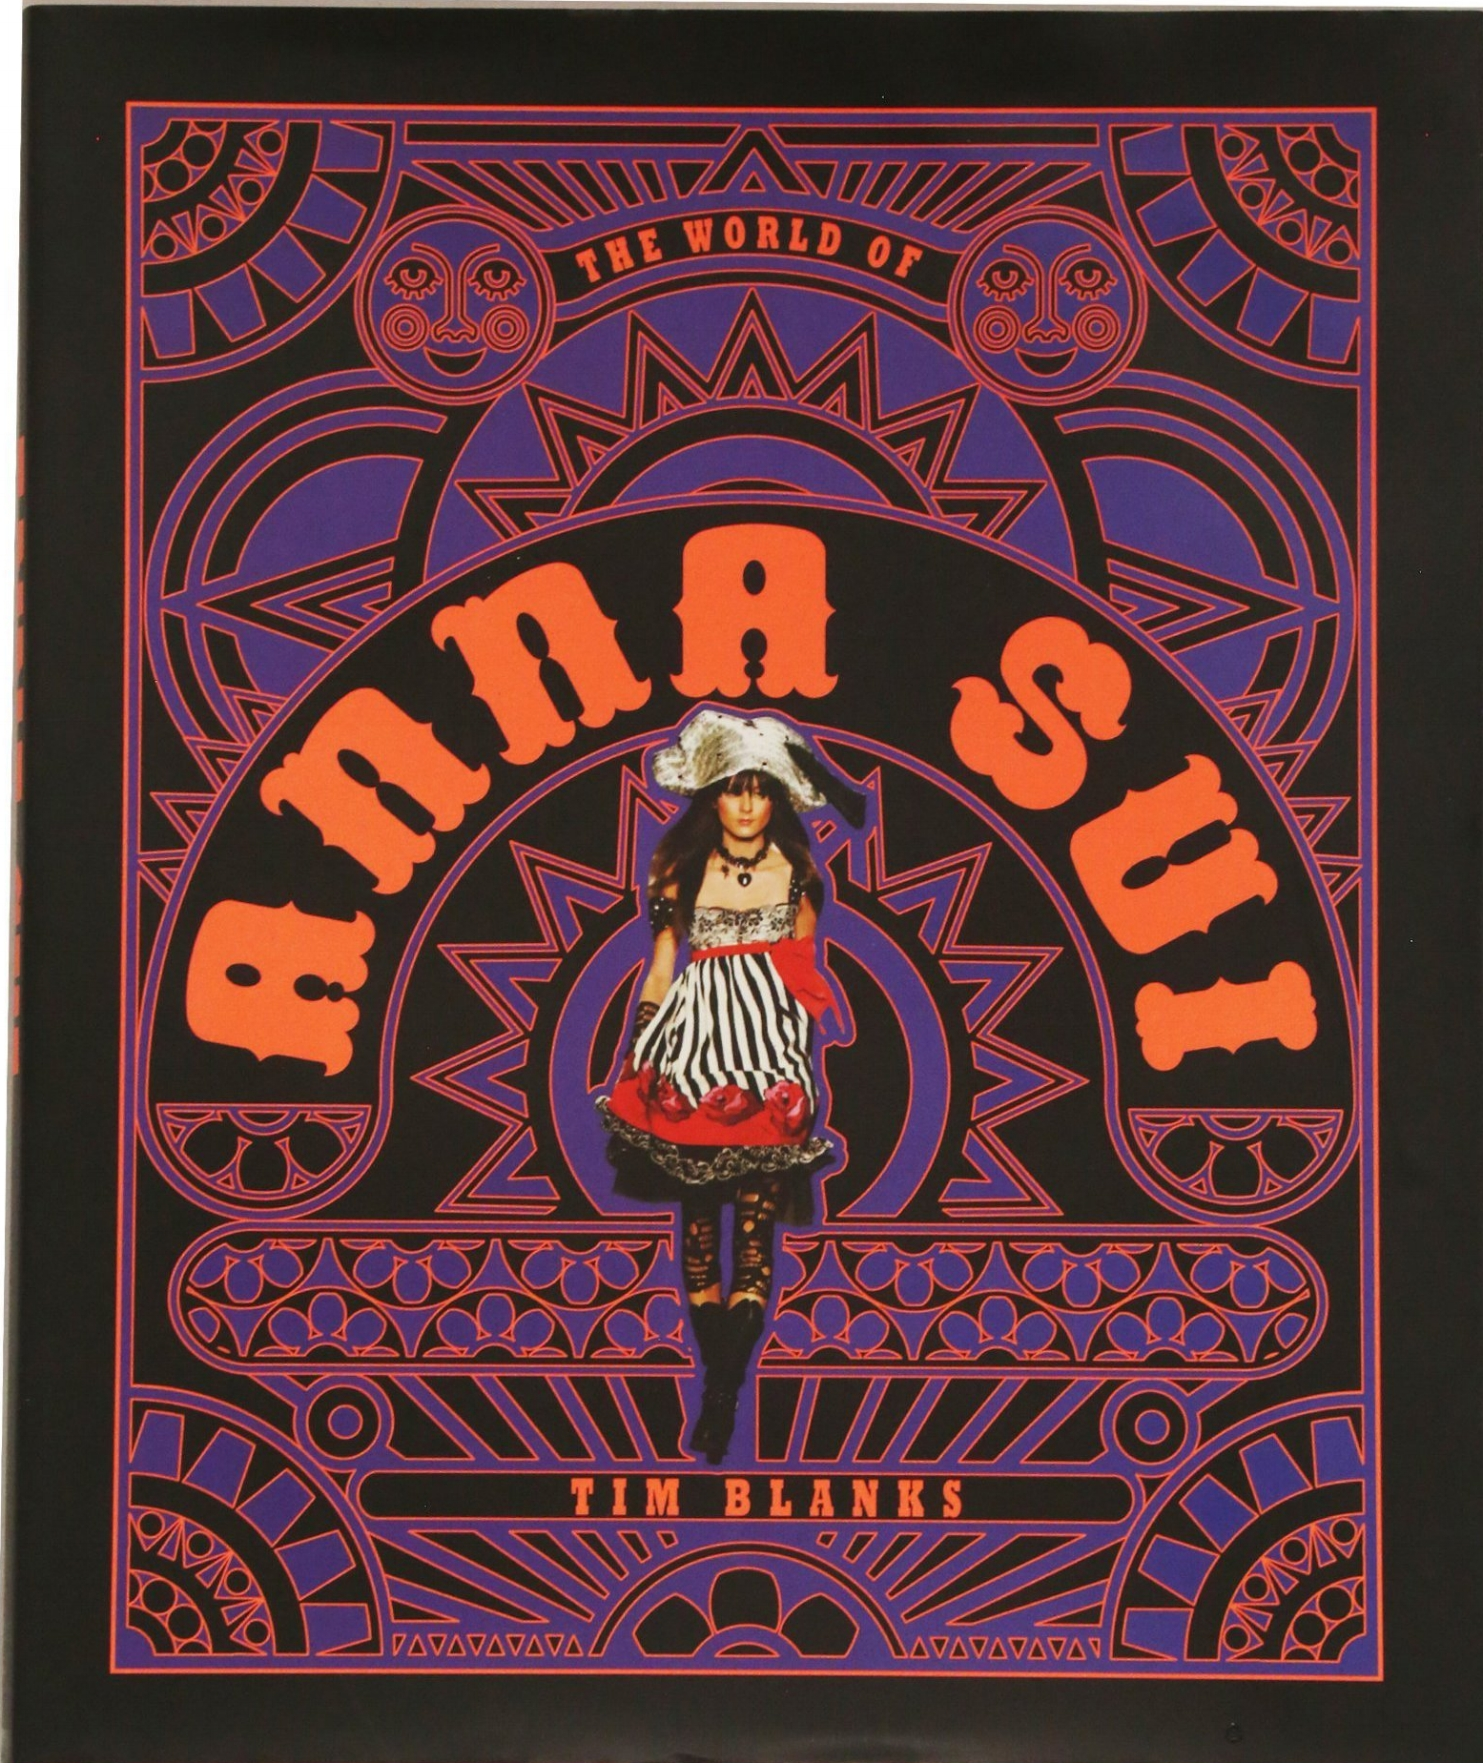 """""""THE WORLD OF ANNA SUI"""" By Tim Blanks $50"""